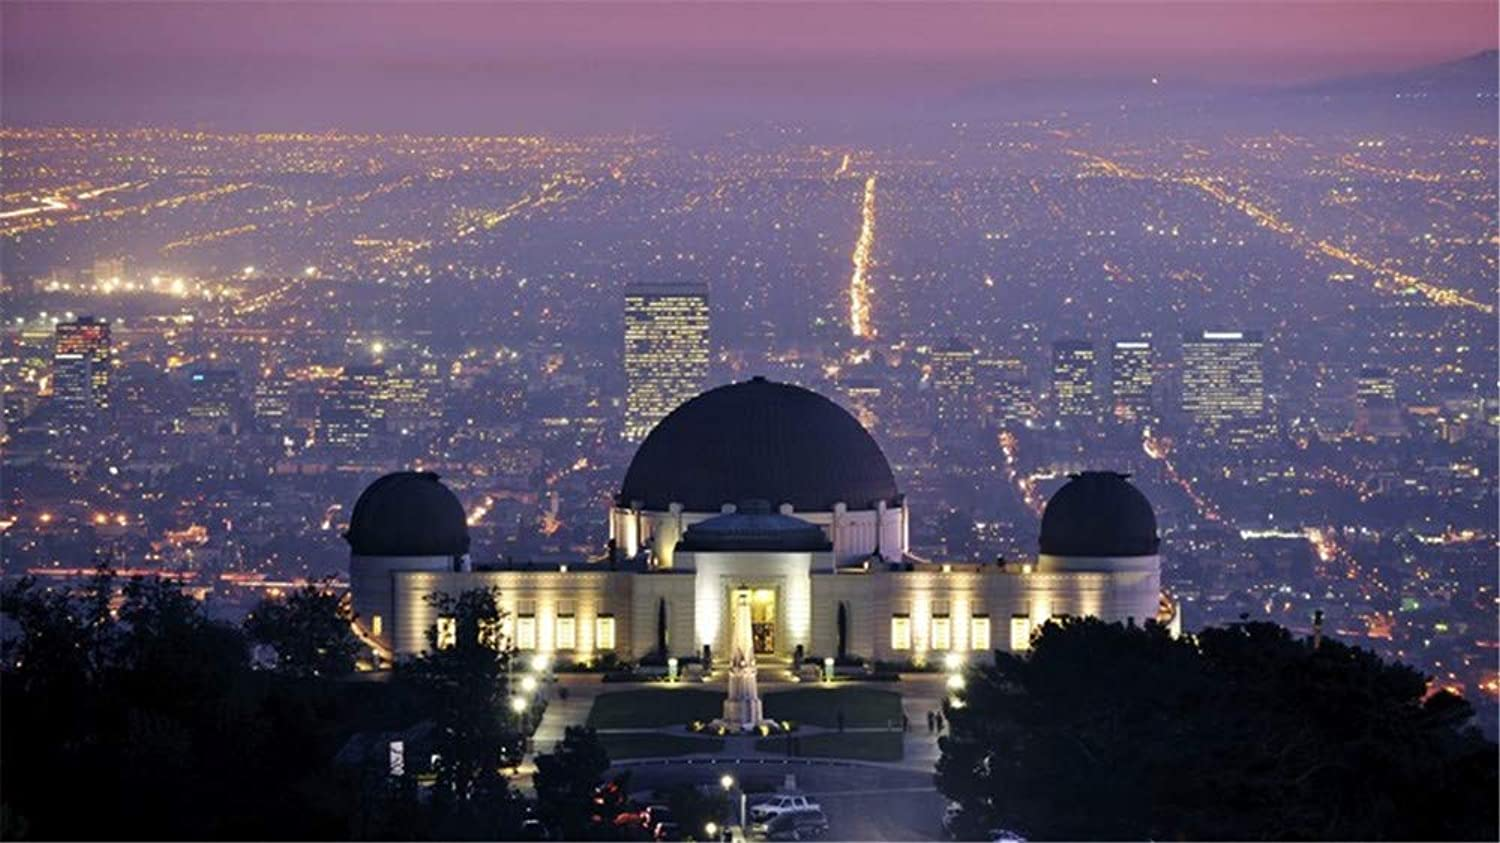 Jigsaw Puzzle 1000 Piece Griffith Observatory Los Angeles Night Classic Puzzle DIY Kit Wooden Toy Unique Gift Home Decor